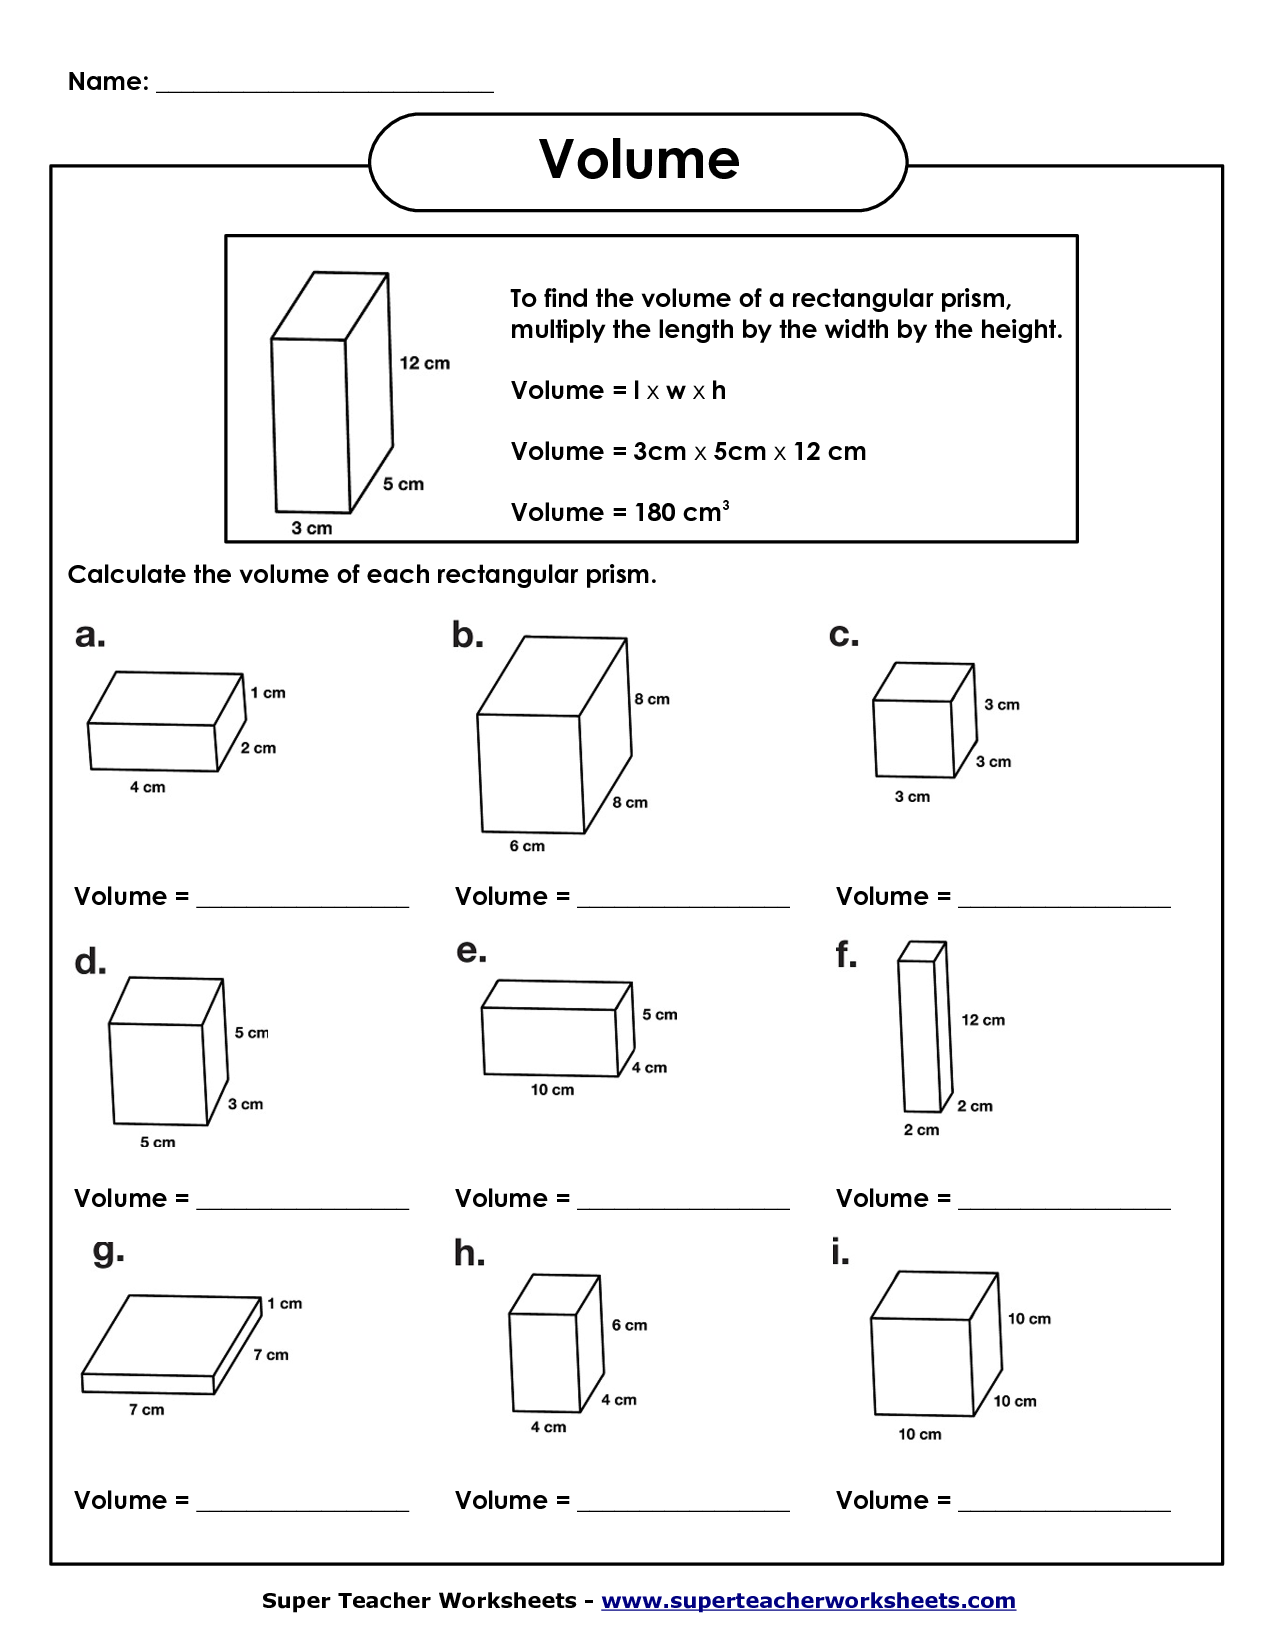 worksheet Surface Area Of Rectangular Prism Worksheet Answers volume of rectangular prism worksheet worksheets math worksheet